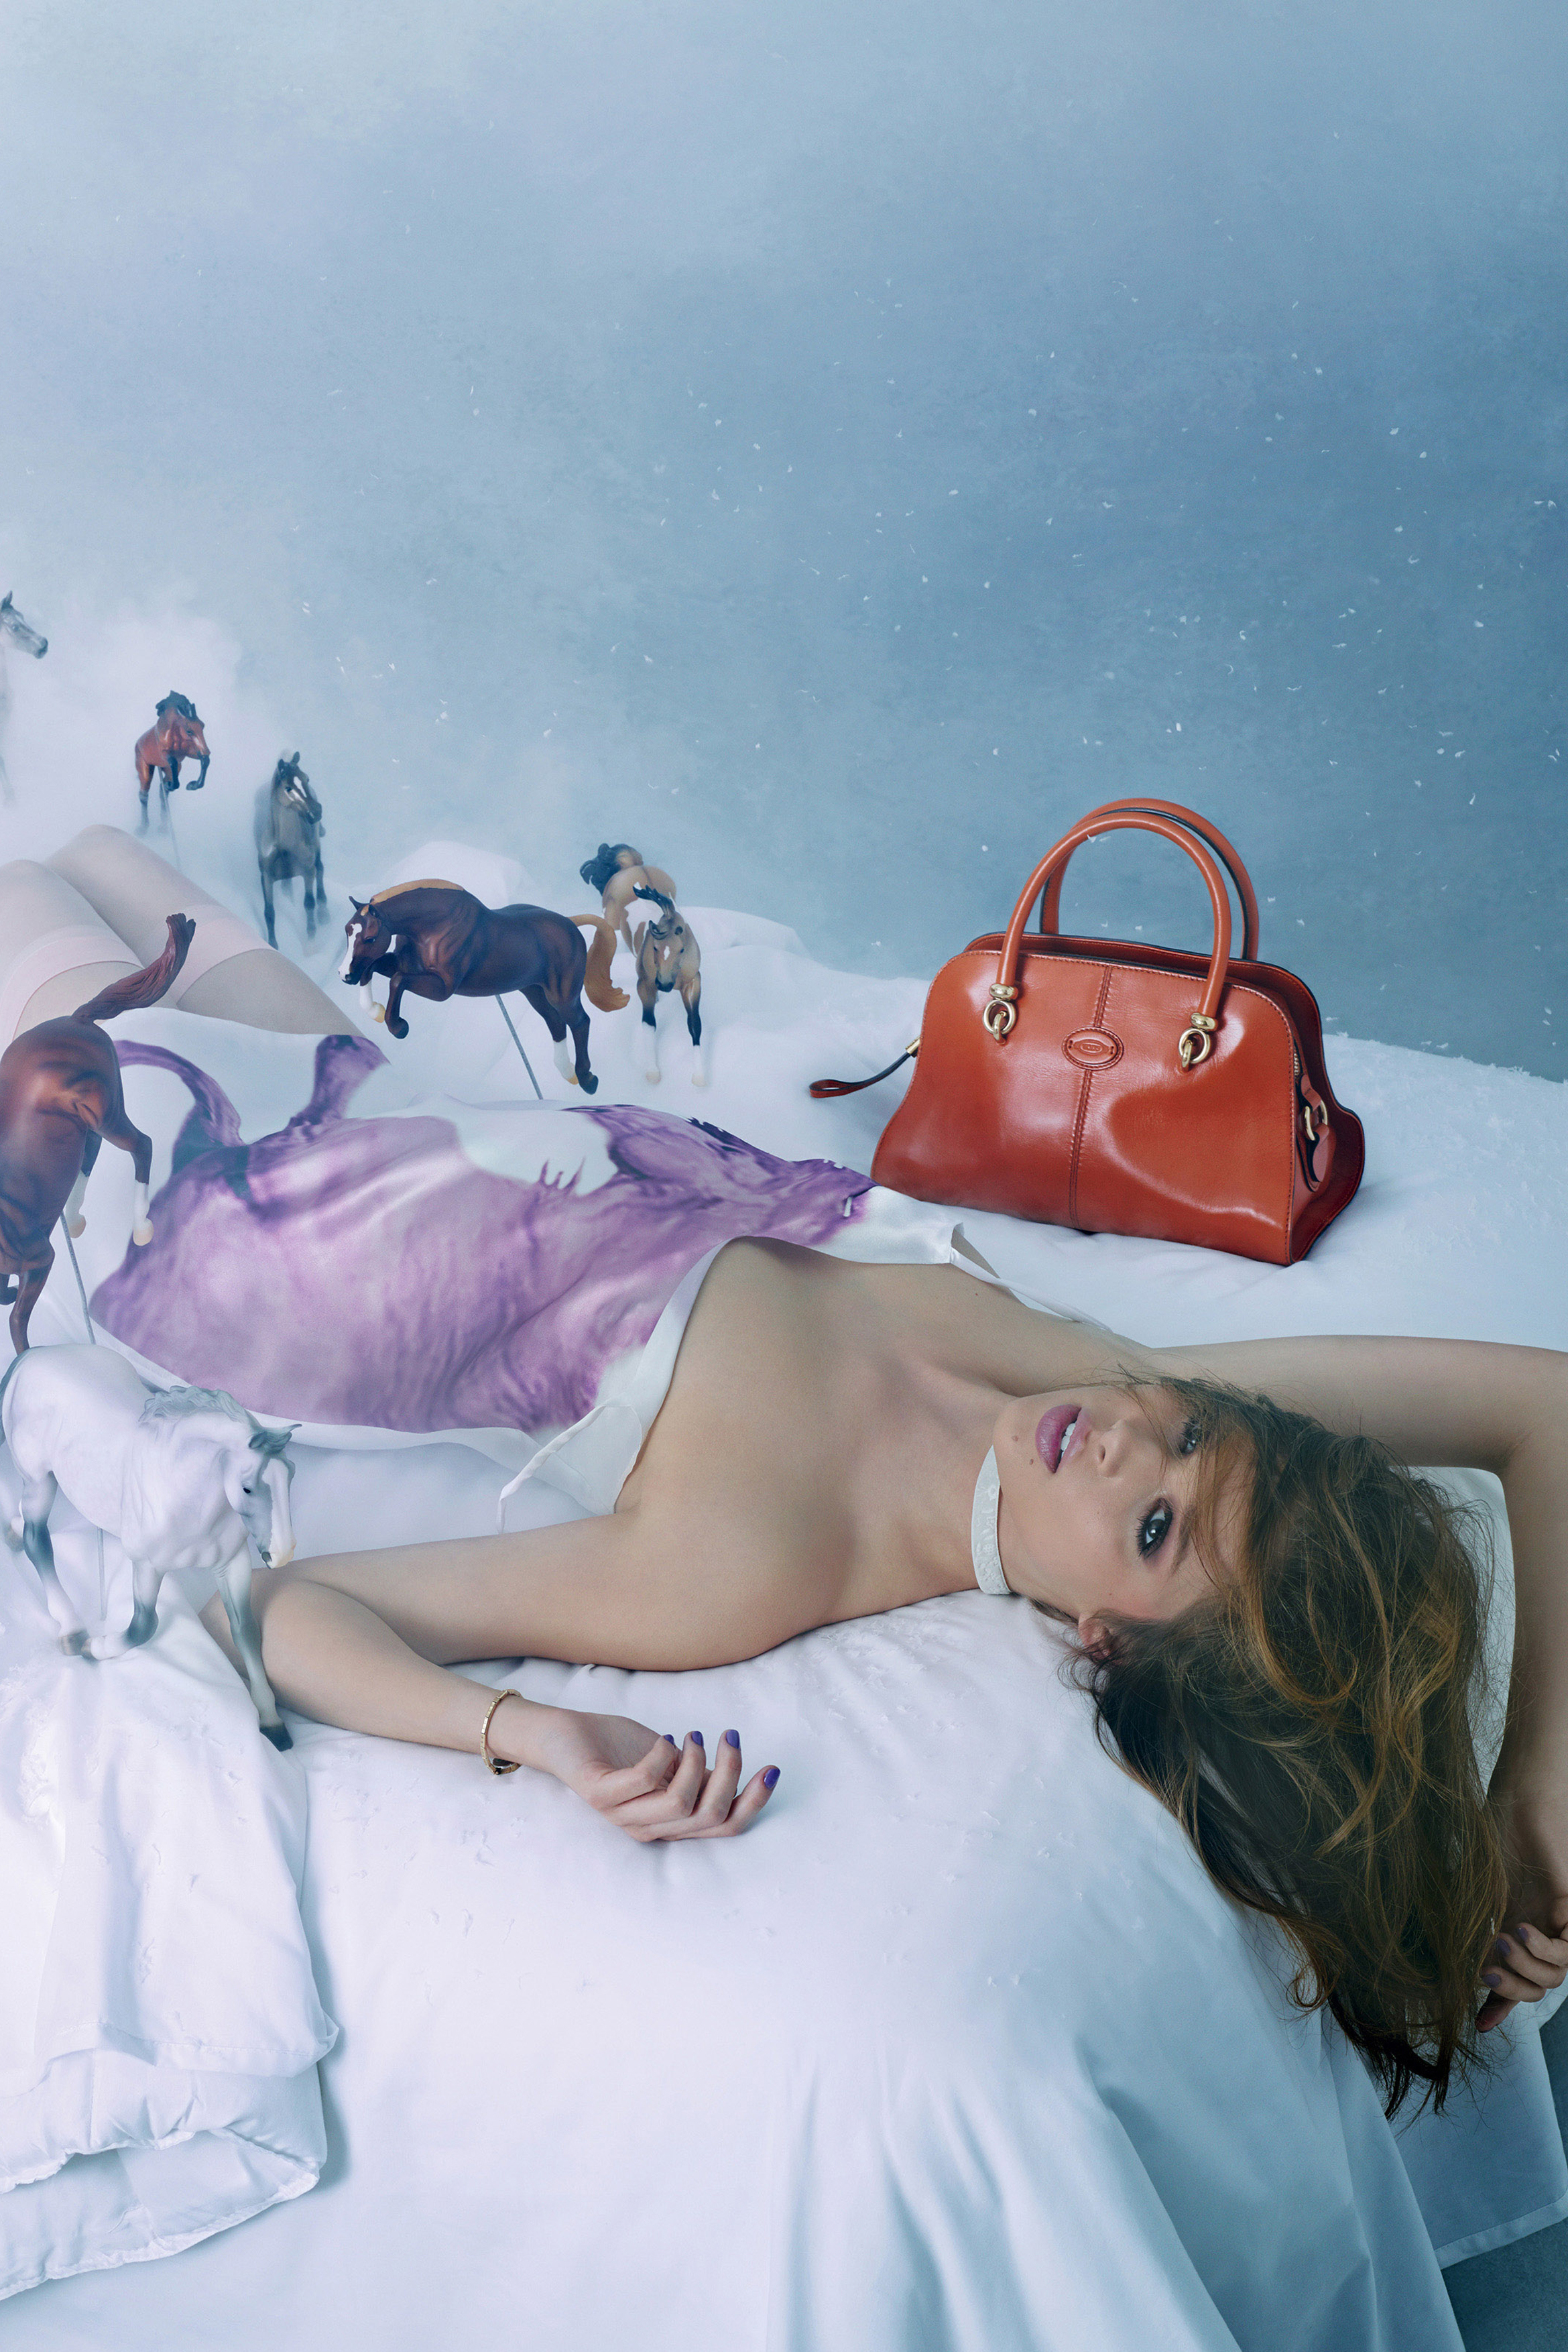 tods-pop-touch-by-david-lachapelle-03